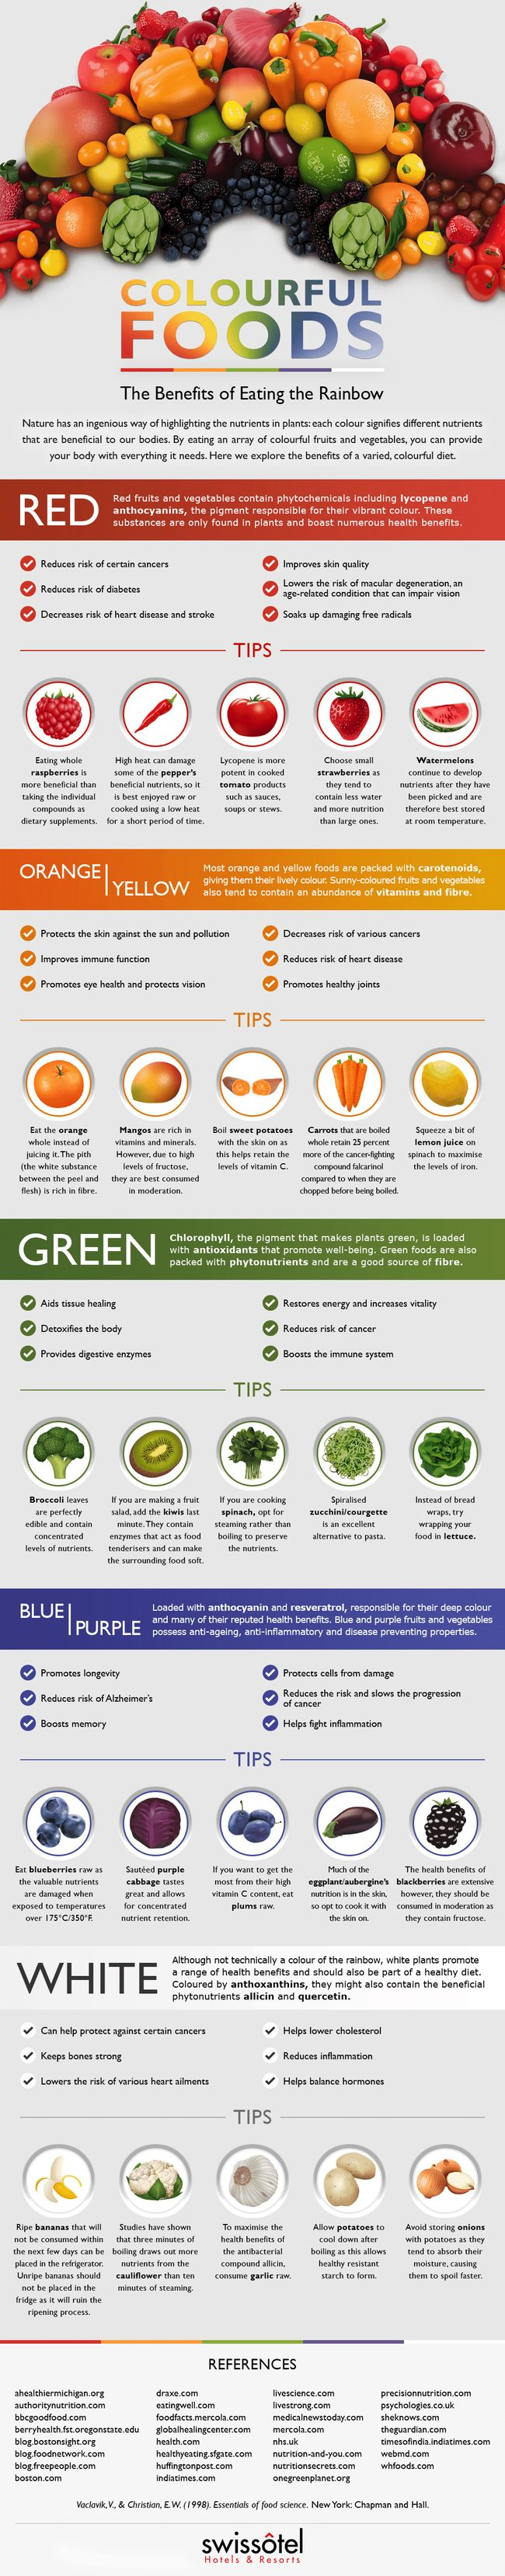 The following infographic explains the health benefits of colorful fruits and vegetables.  Nutritionists tell us to eat fruits and vegetables of many different colors in order to get a wide range of nutrients, but do you know what those nutrients actually are or what they do for your health? This fun, informative infographic has lots of specific facts and tips that will inspire you to fill the fruit bowl and crisper and get munching.